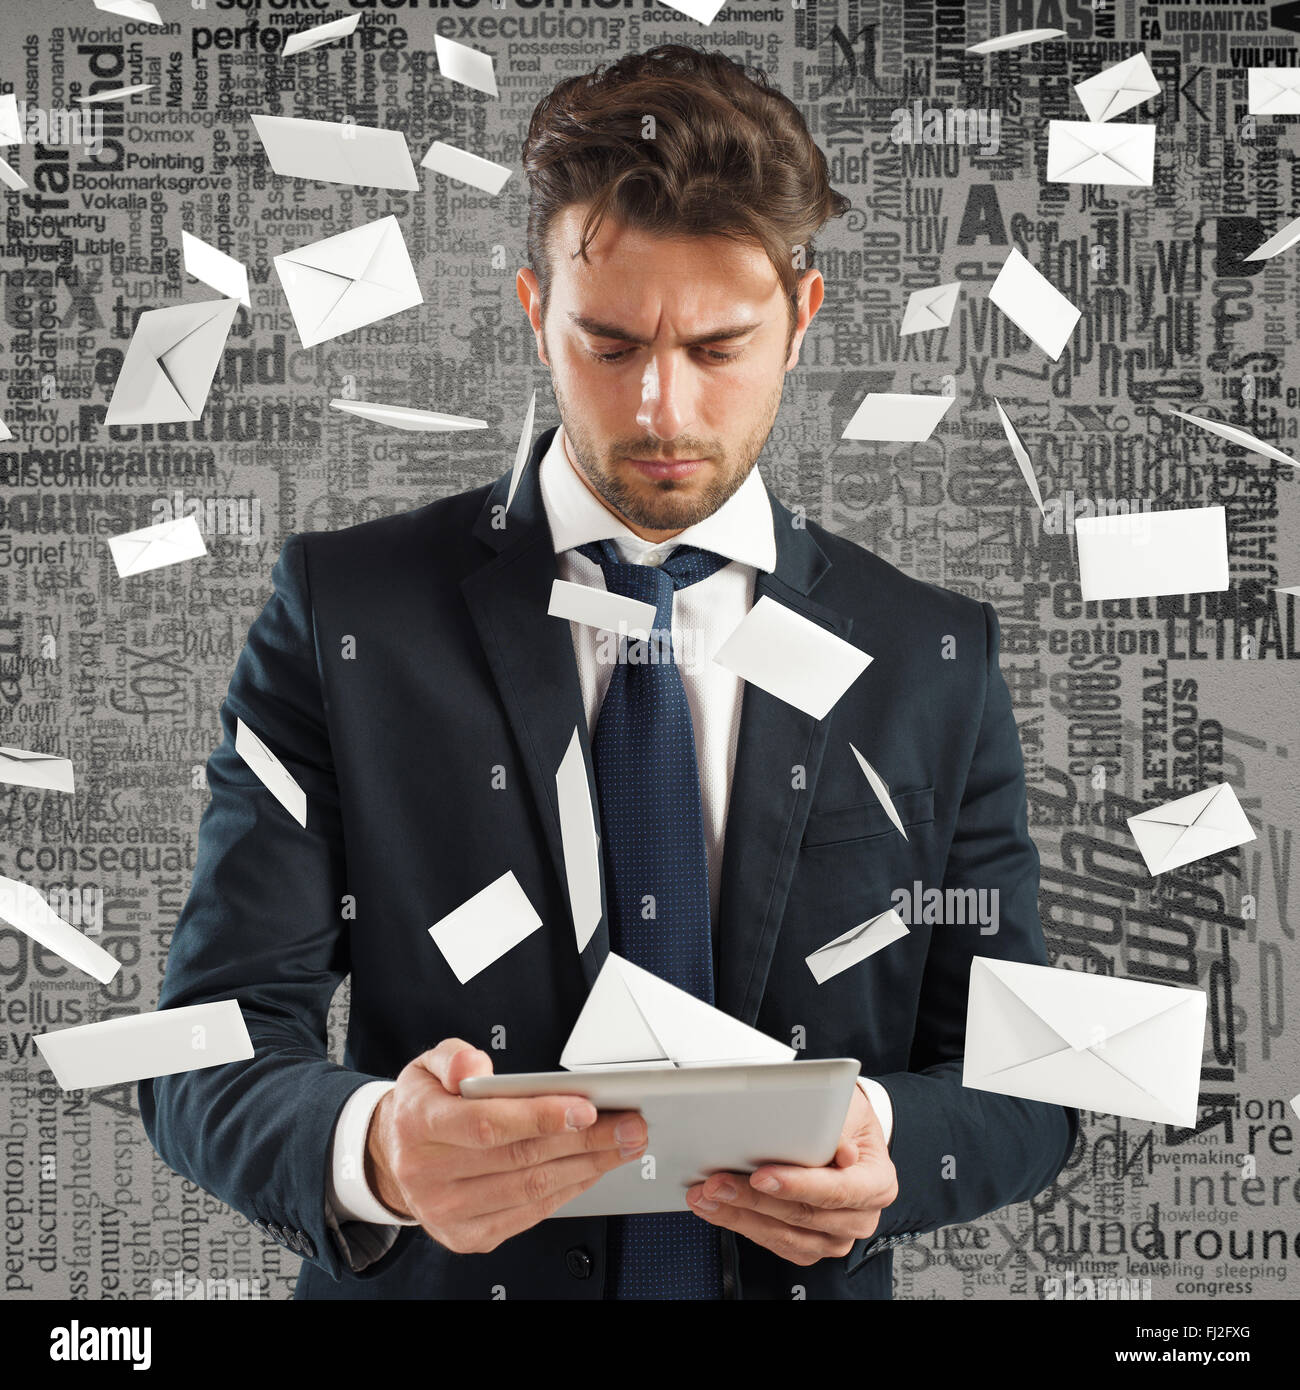 Stressed spam - Stock Image